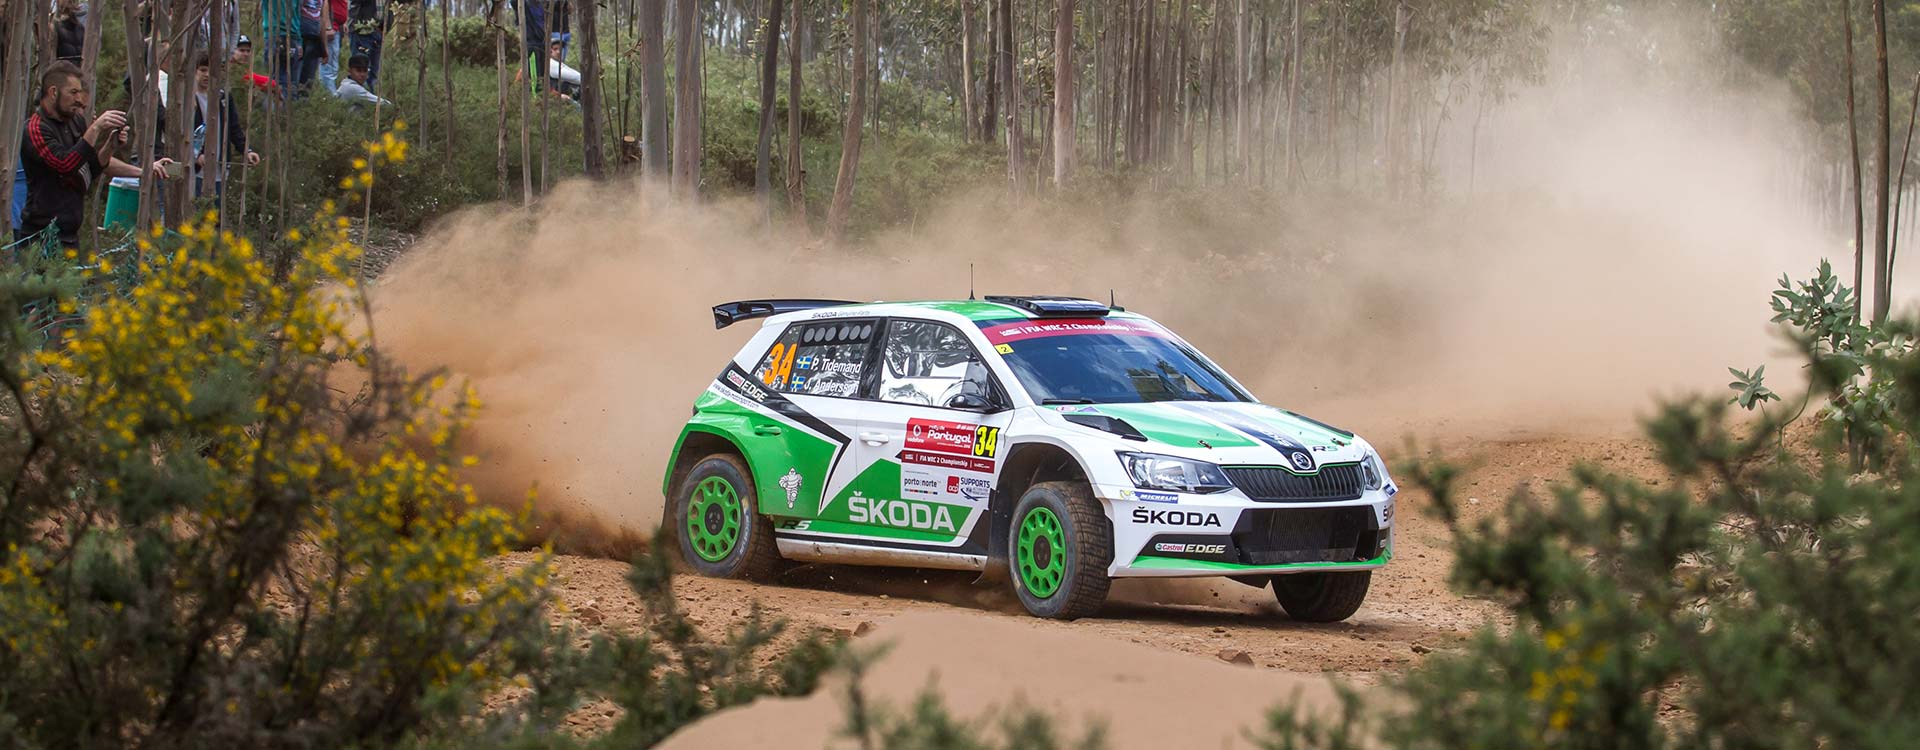 PHOTO: ŠKODA Motorsport at the Rally de Portugal